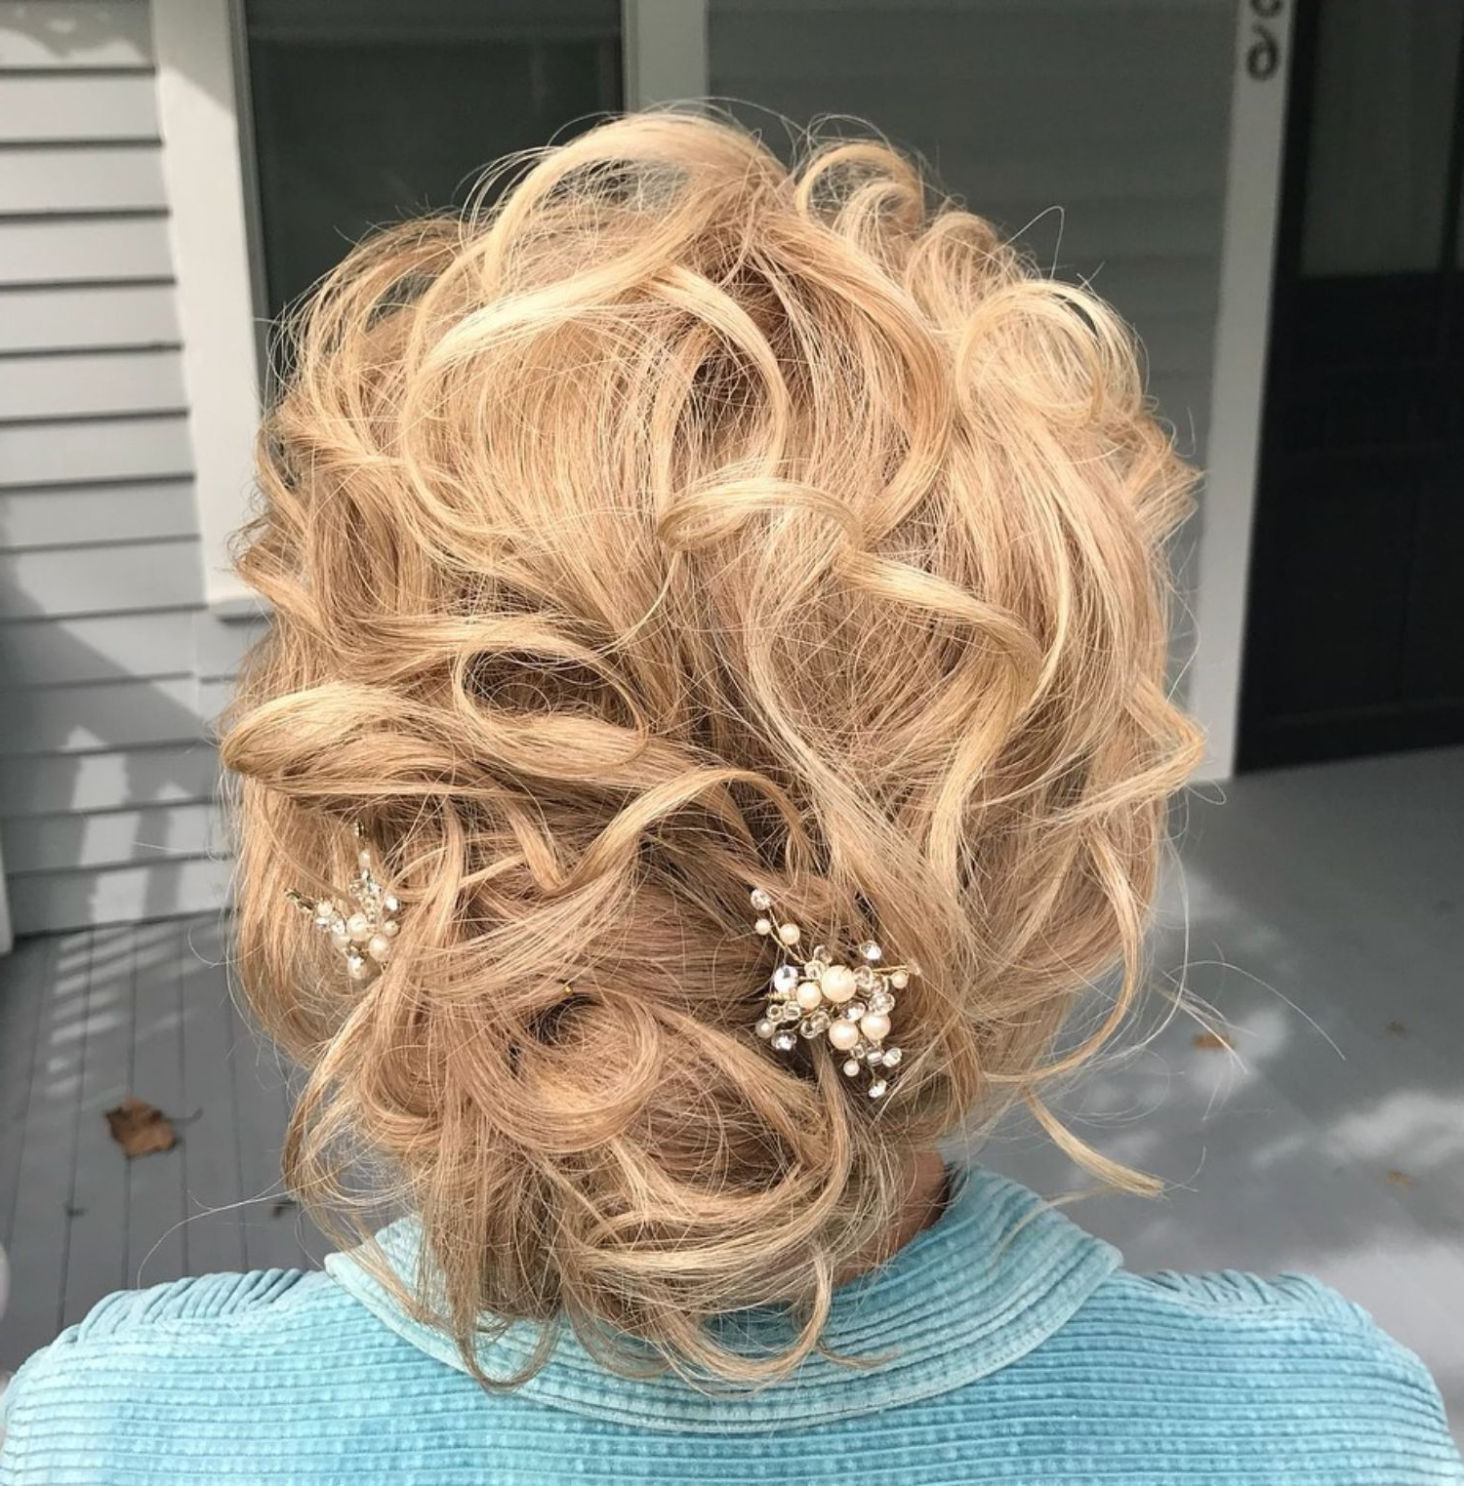 Tasha's Inside Widely Used Voluminous Curly Updo Hairstyles With Bangs (View 18 of 20)